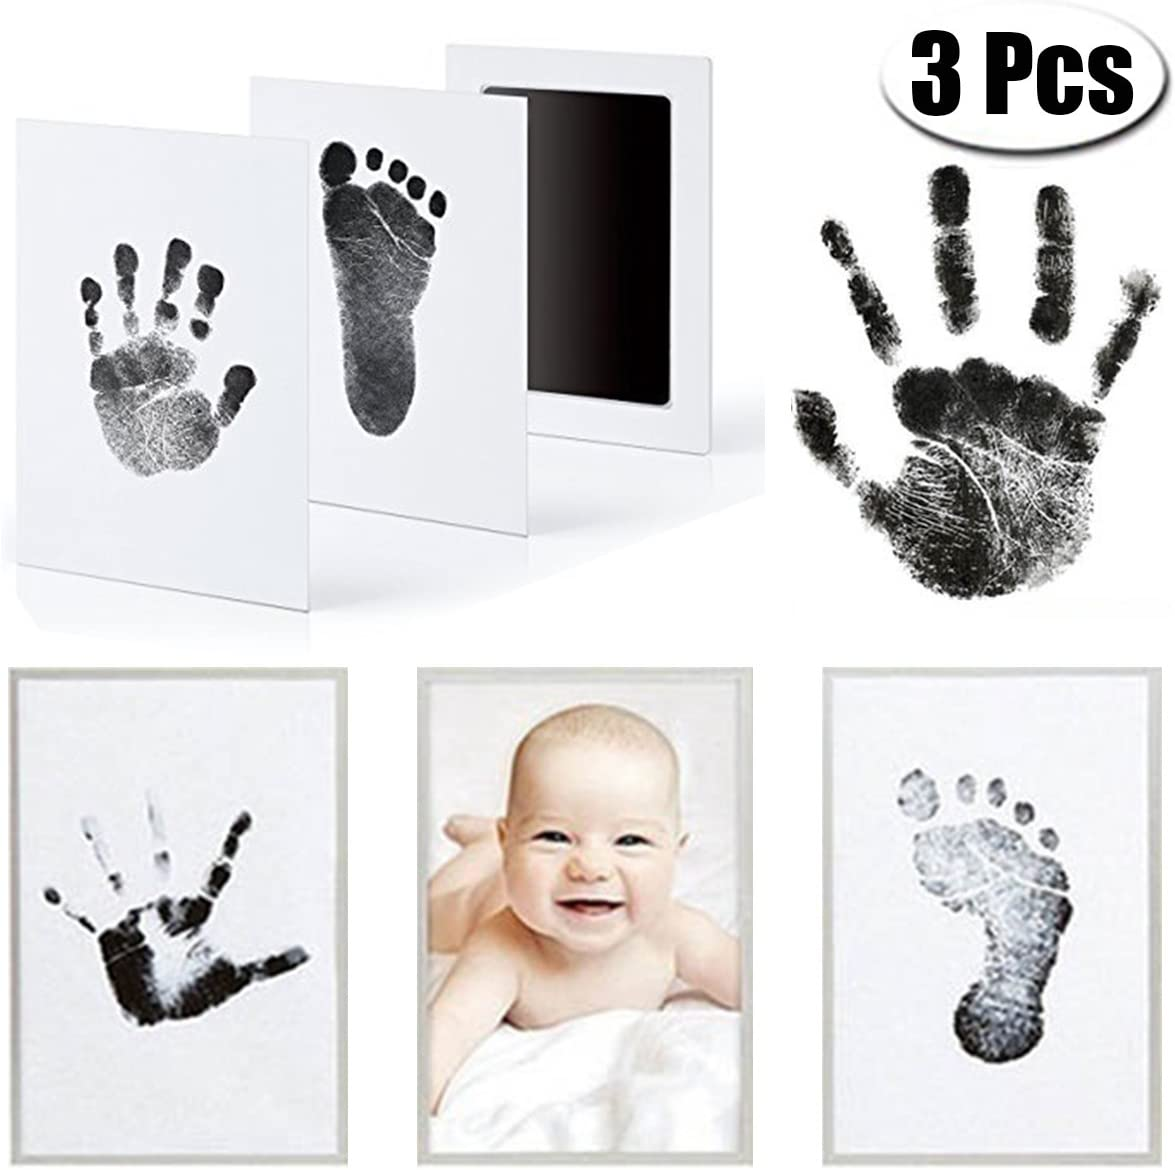 Baby Handprint and Footprint Kit,3 Pack No-Mess Ink Baby Footprint /& Handprint Ink Pad with 4 Extra Imprint Cards for Newborn 0-6 Months Infant Shower Gift Black + Pink